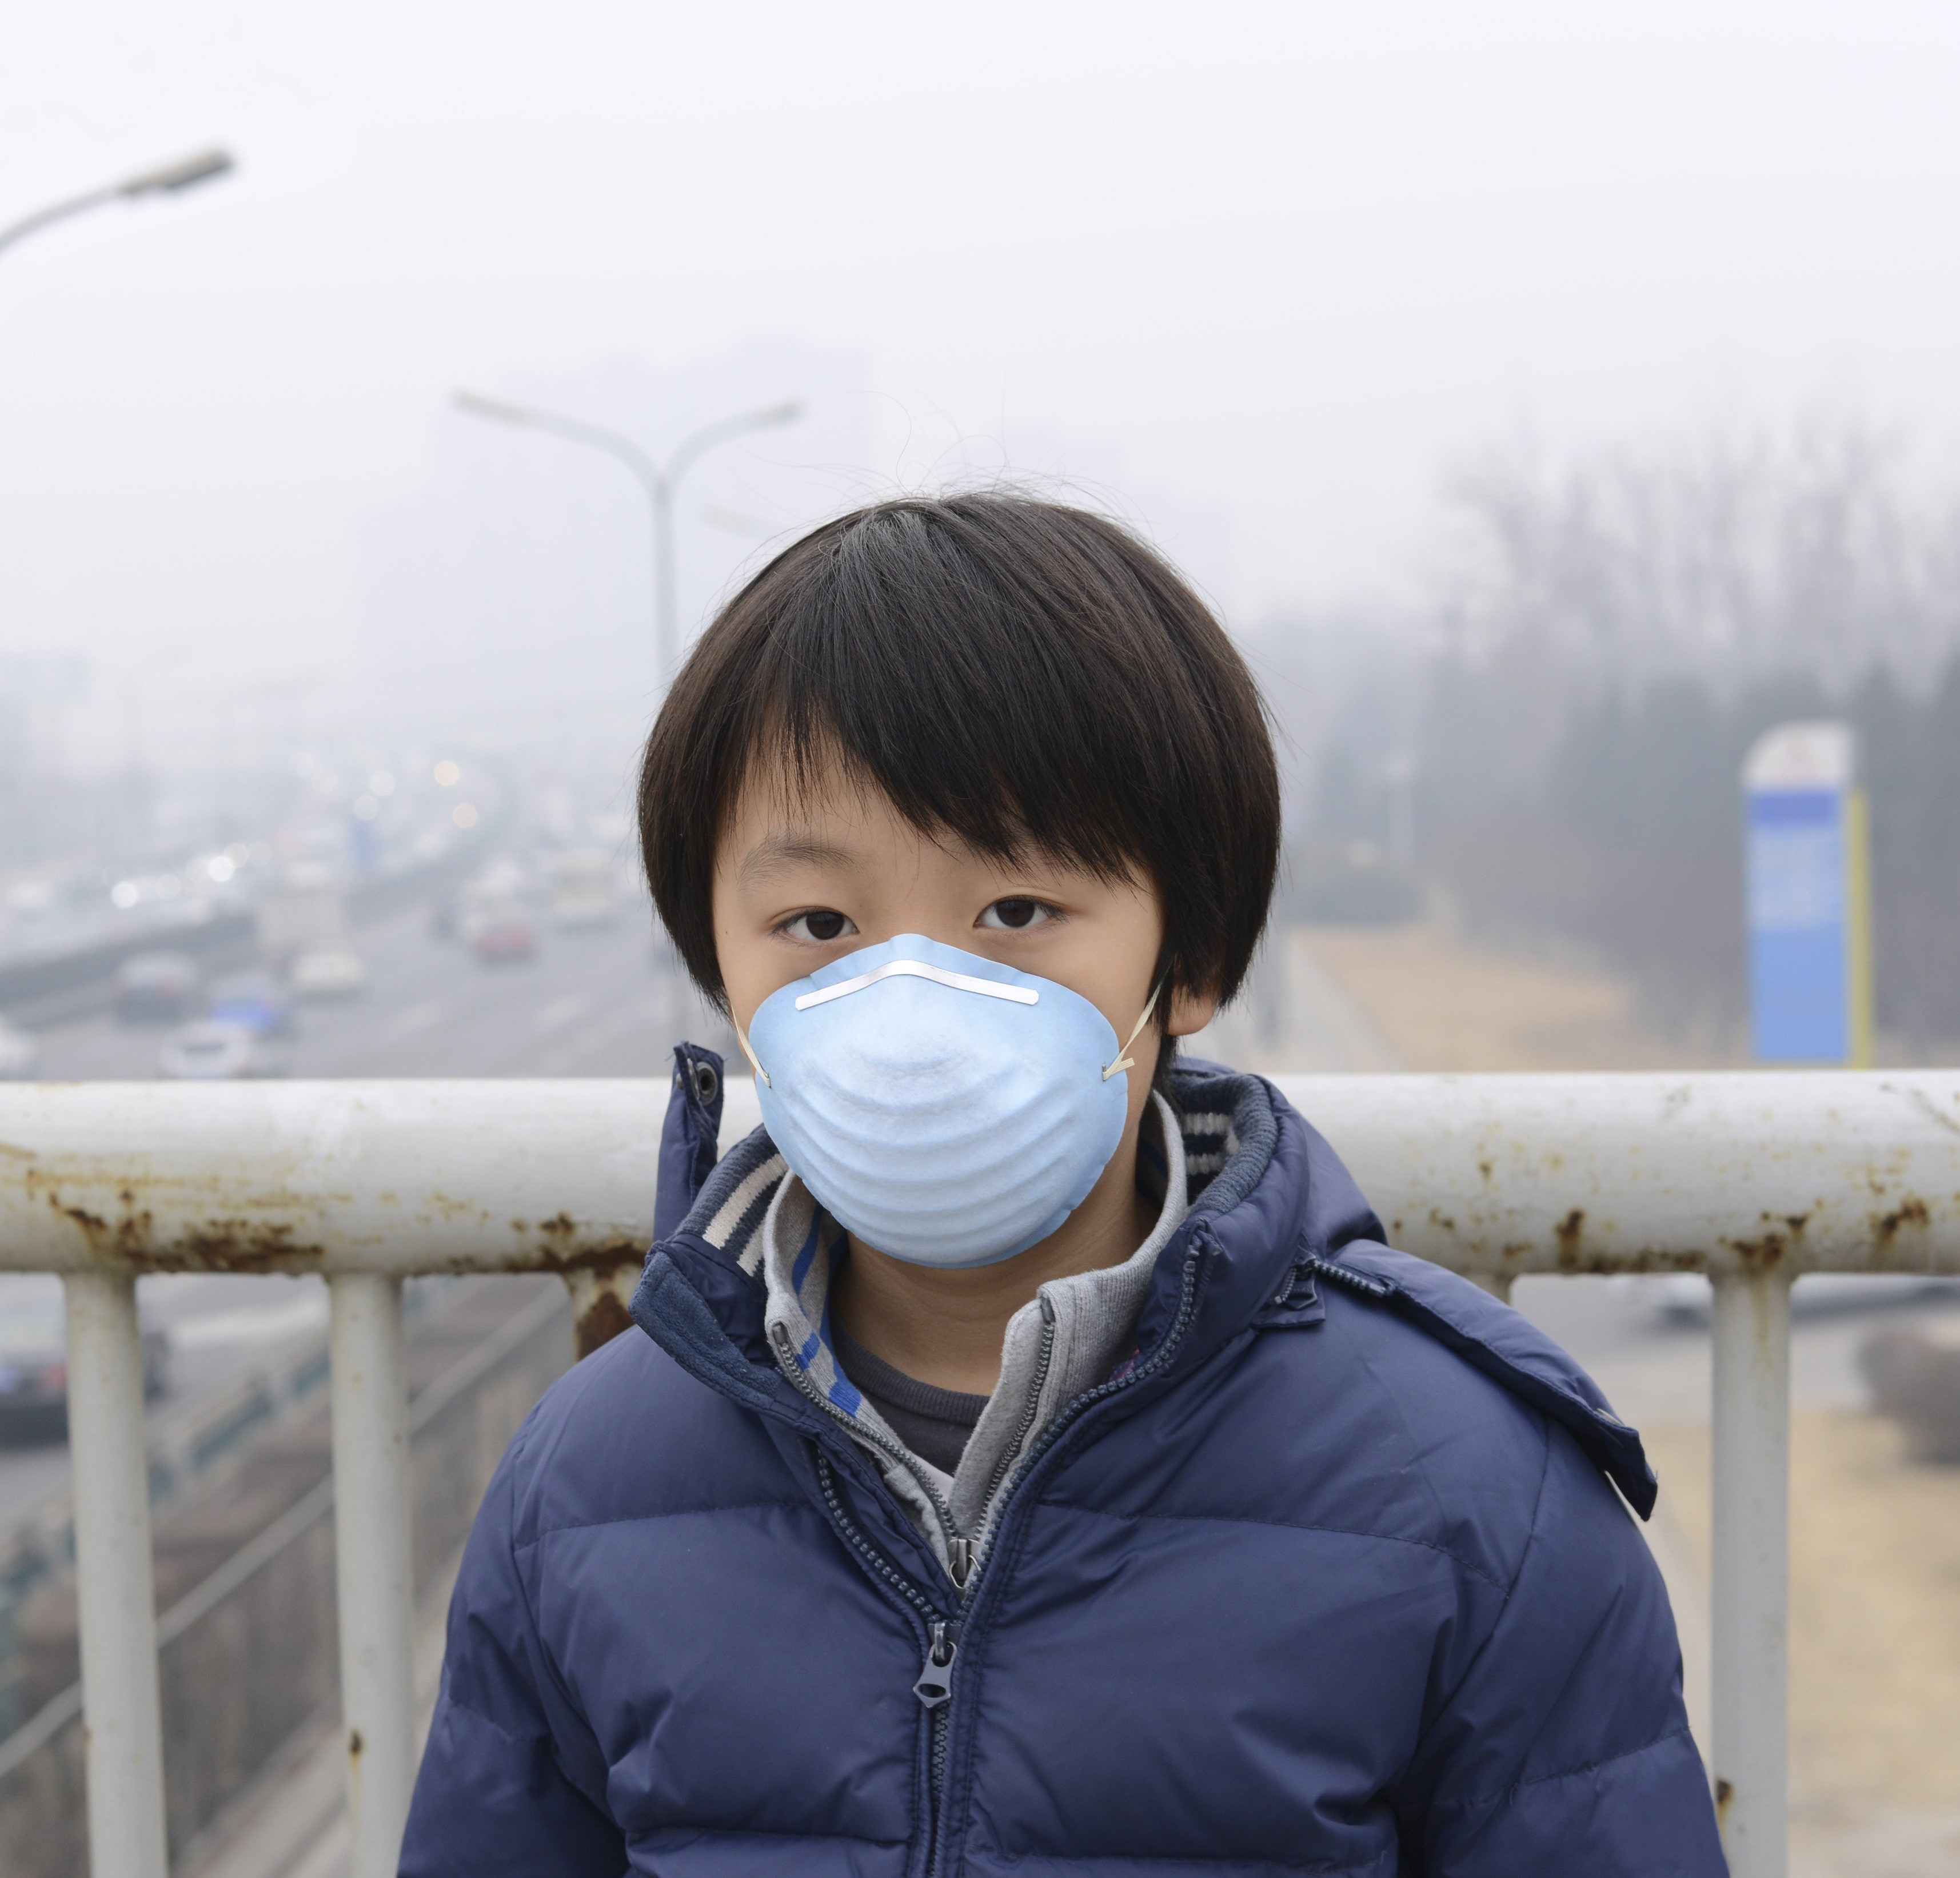 Boy wearing mask in China with polluted air behind